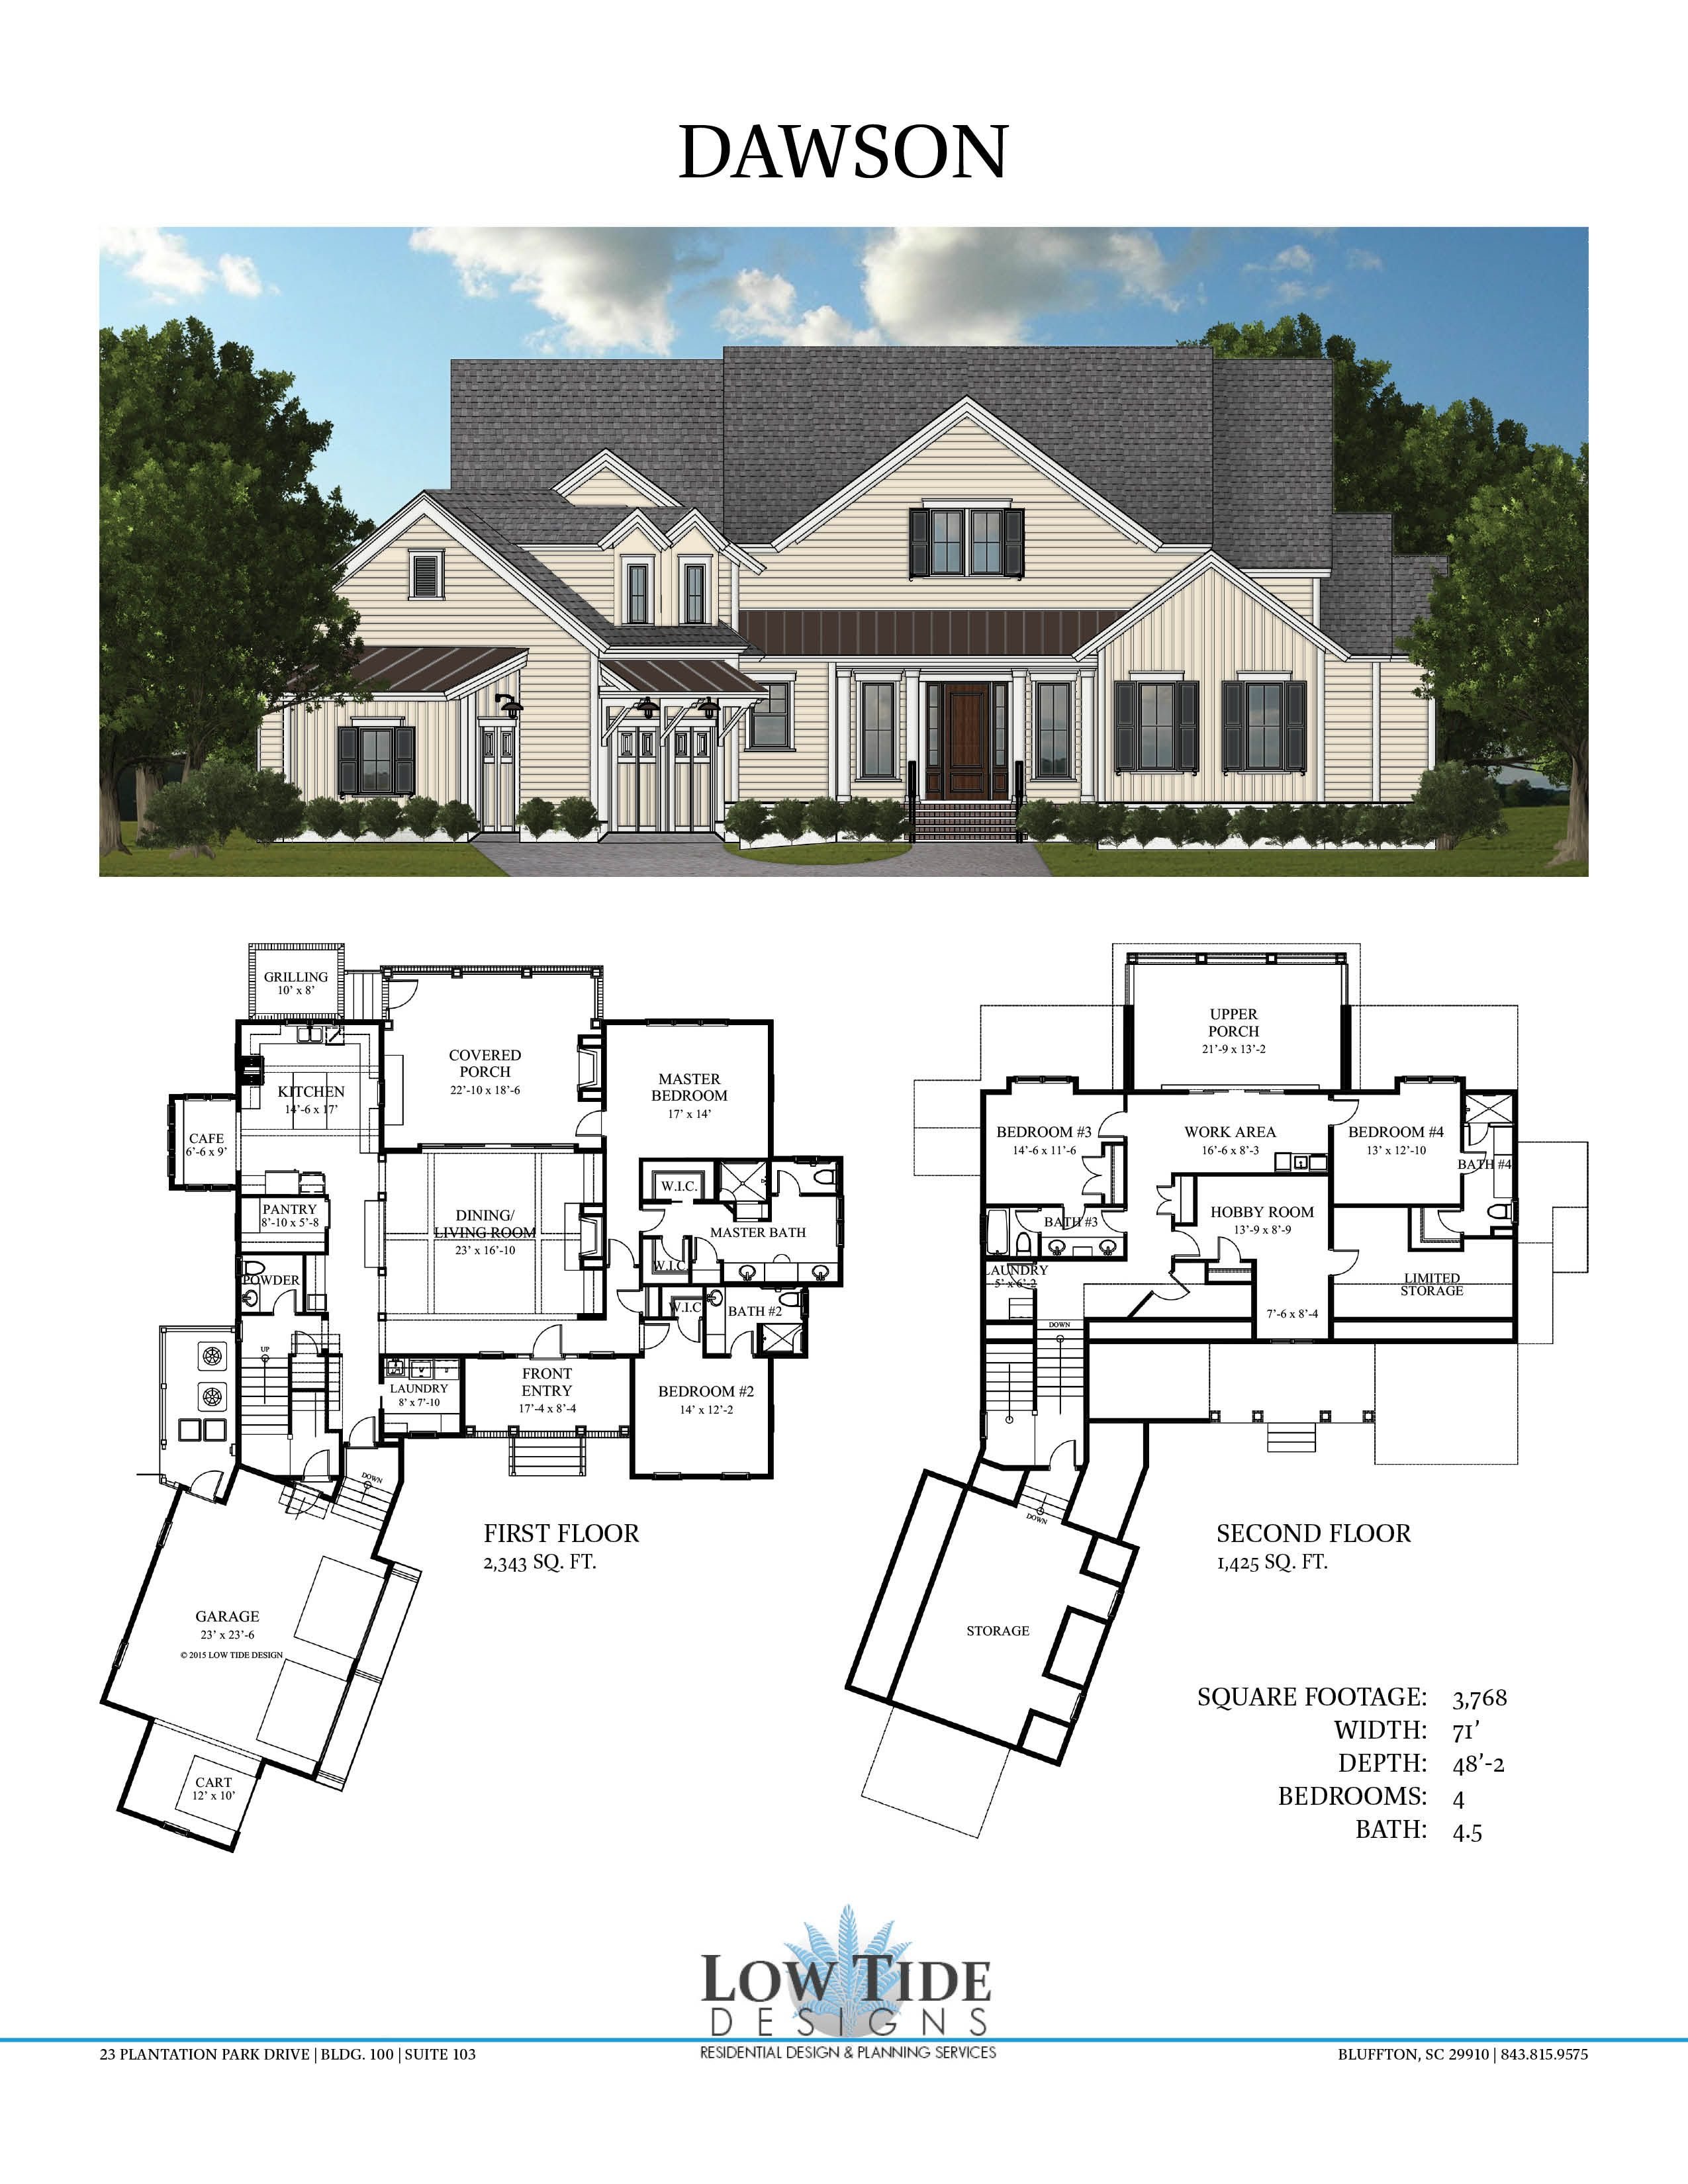 Dawson is a two-story 4 bedroom, 4.5 bath Low Country home with an on 4 bedroom duplex plans, 4 bedroom log home plans, 4 bedroom log cabin plans, 4 bedroom townhouse plans, small country house plans, new 4 bedroom home plans, four bedroom house plans, 4 bedroom home floor plans, 4 bedroom cottage plans, 4 bedroom villa plans, family country house plans, rustic country house plans, barn country house plans, luxury country house plans, 4 bedroom open floor plans, 4 bedroom modern home plans, 4 bedroom building plans, 4 bedroom home designs, 4 bedroom mountain home plans, 4 bedroom custom home plans,